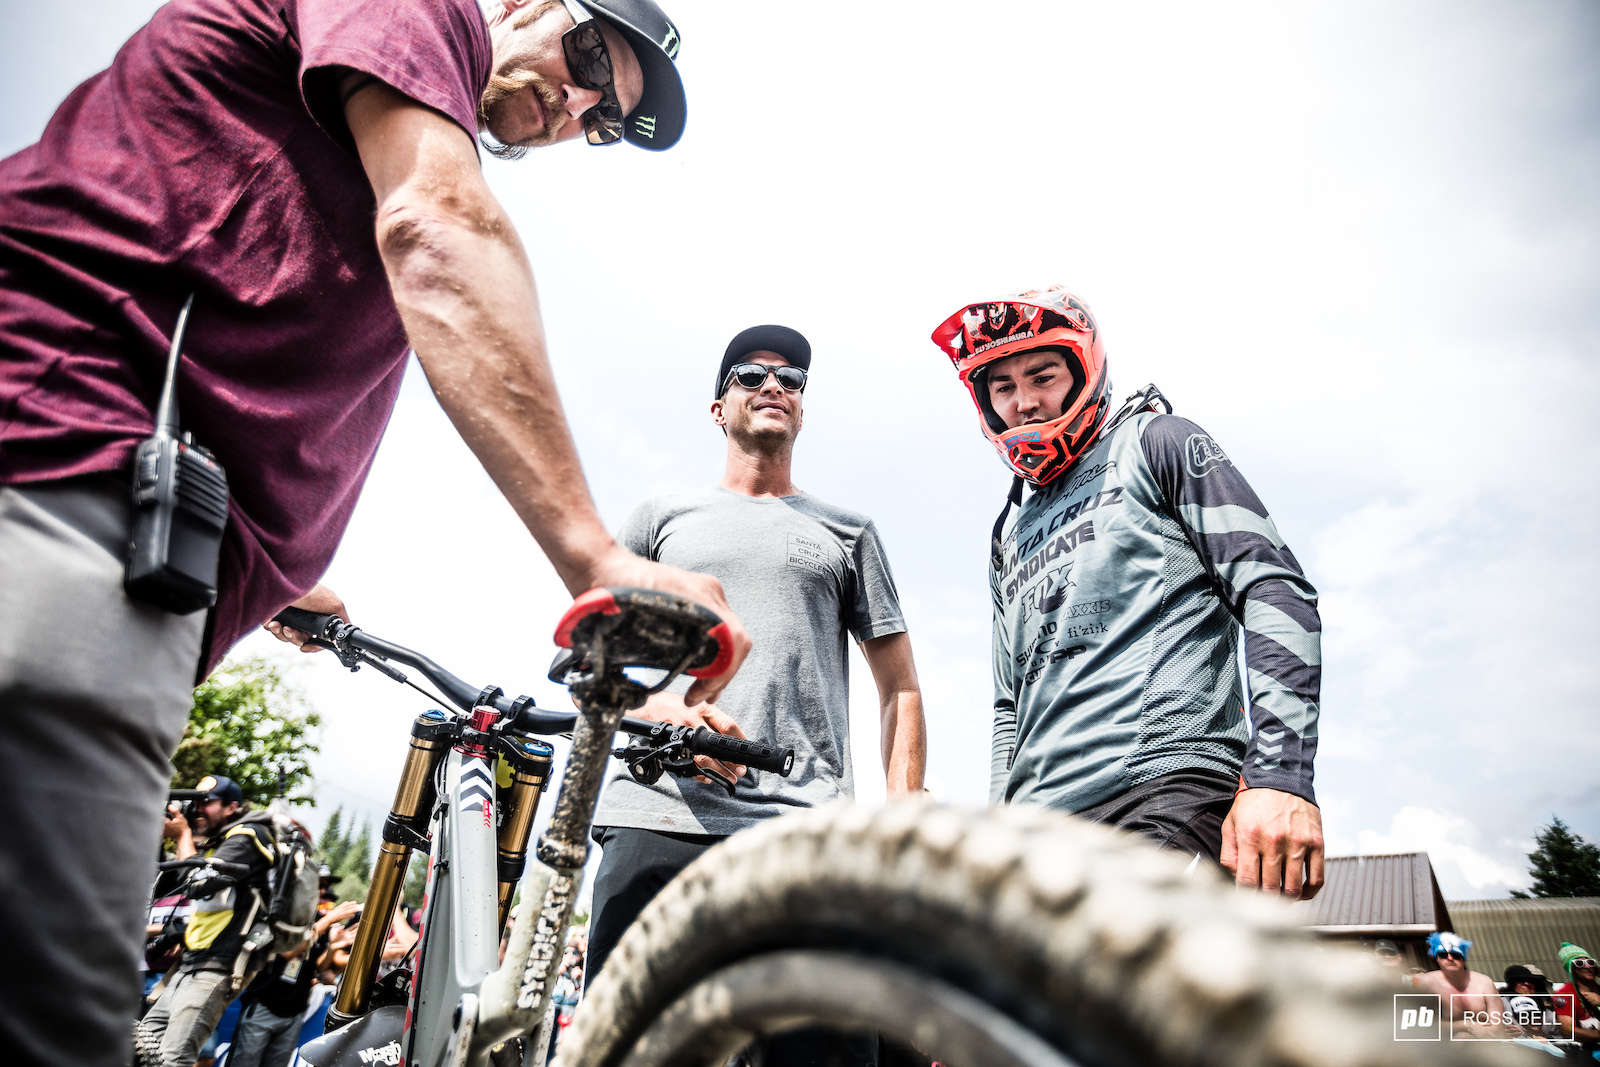 Steve Peat Greg Minnaar and Luca Shaw inspect the rear flat which deflated Luca s race run.